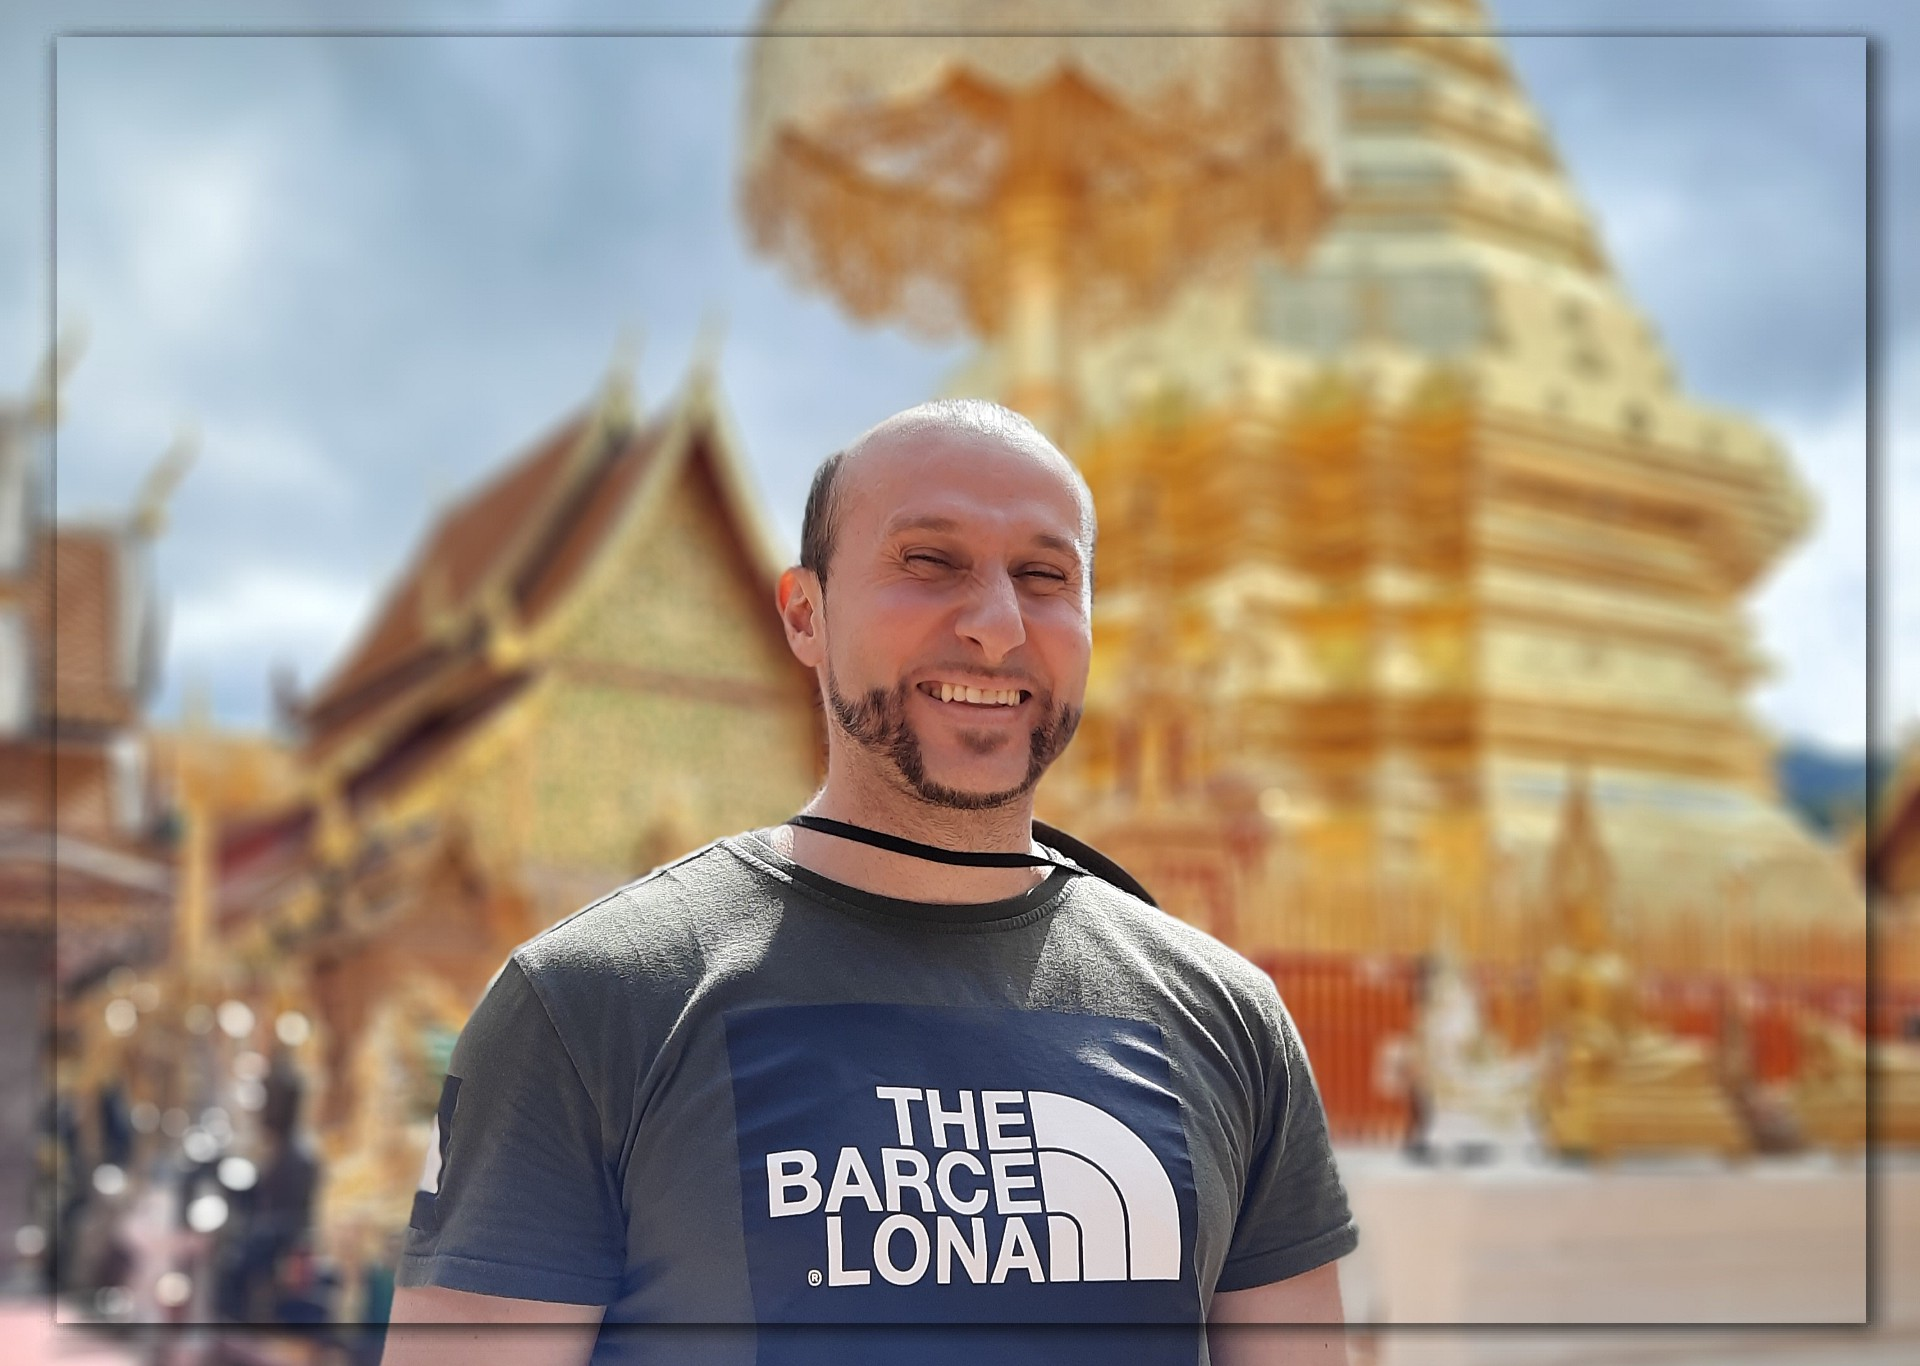 A photograph of me candidly smiling. Behind me is the famous giant gold pagoda found at Wat Phra That Doi Suthep (temple).